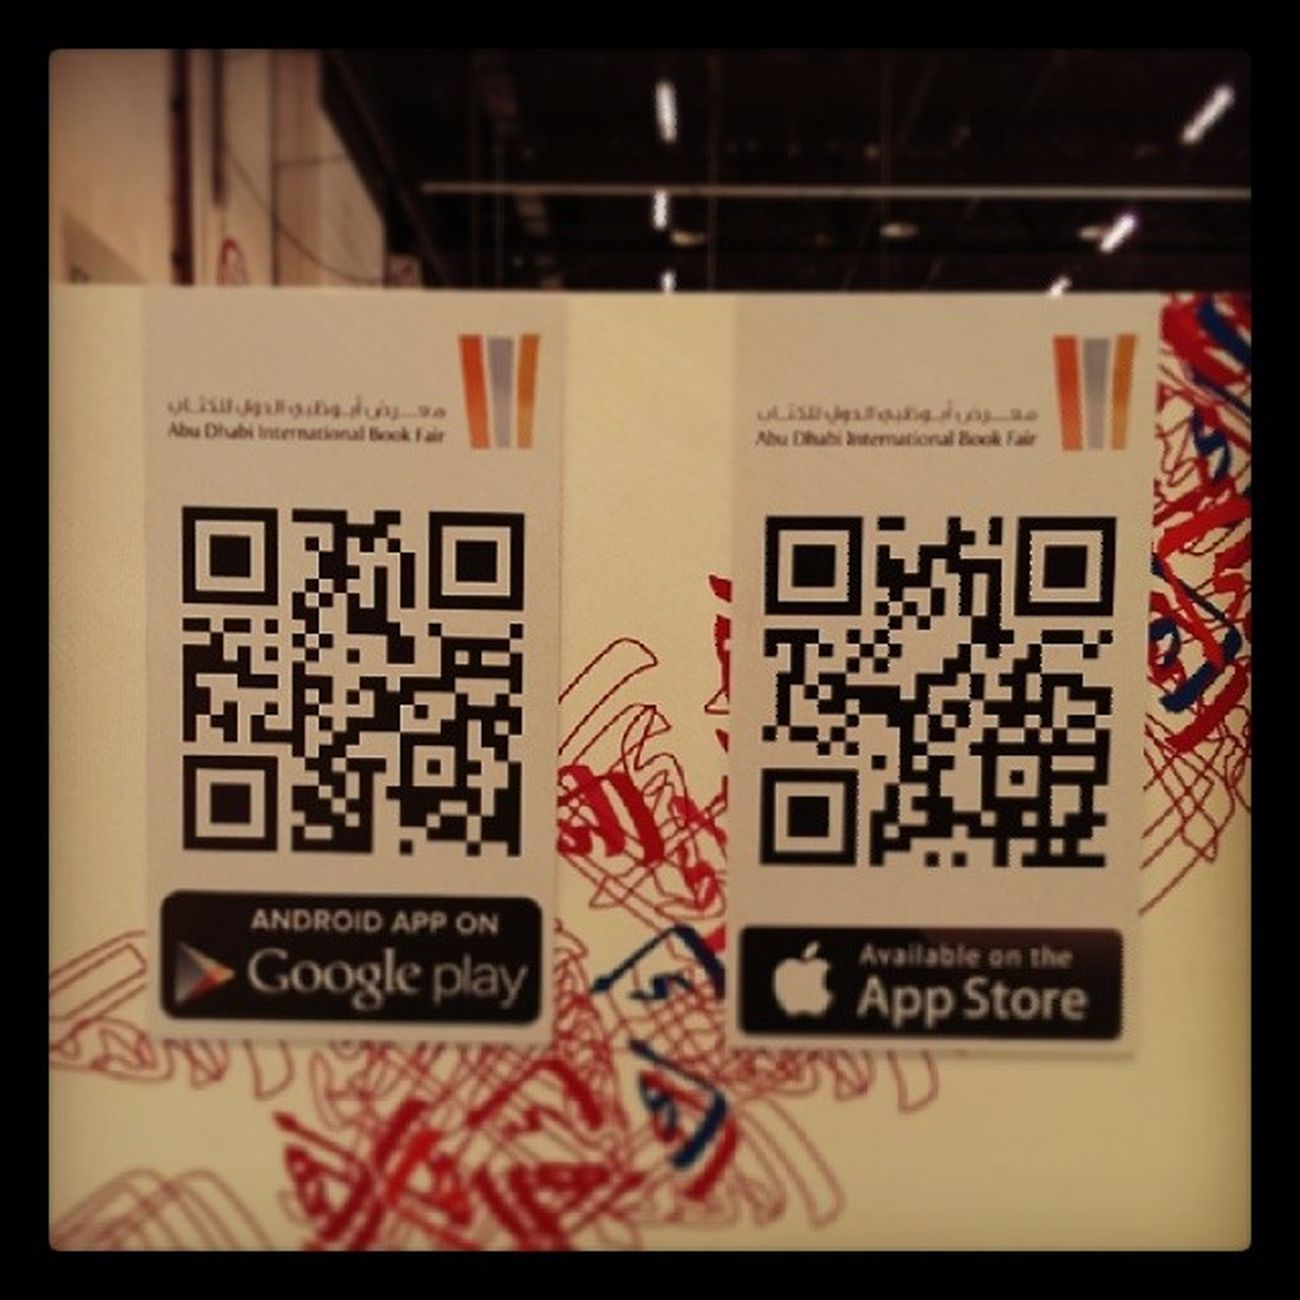 ADIBF2014 mobile app تطبيق معرض_أبوظبي_للكتاب App_store Google_play interface_jlt